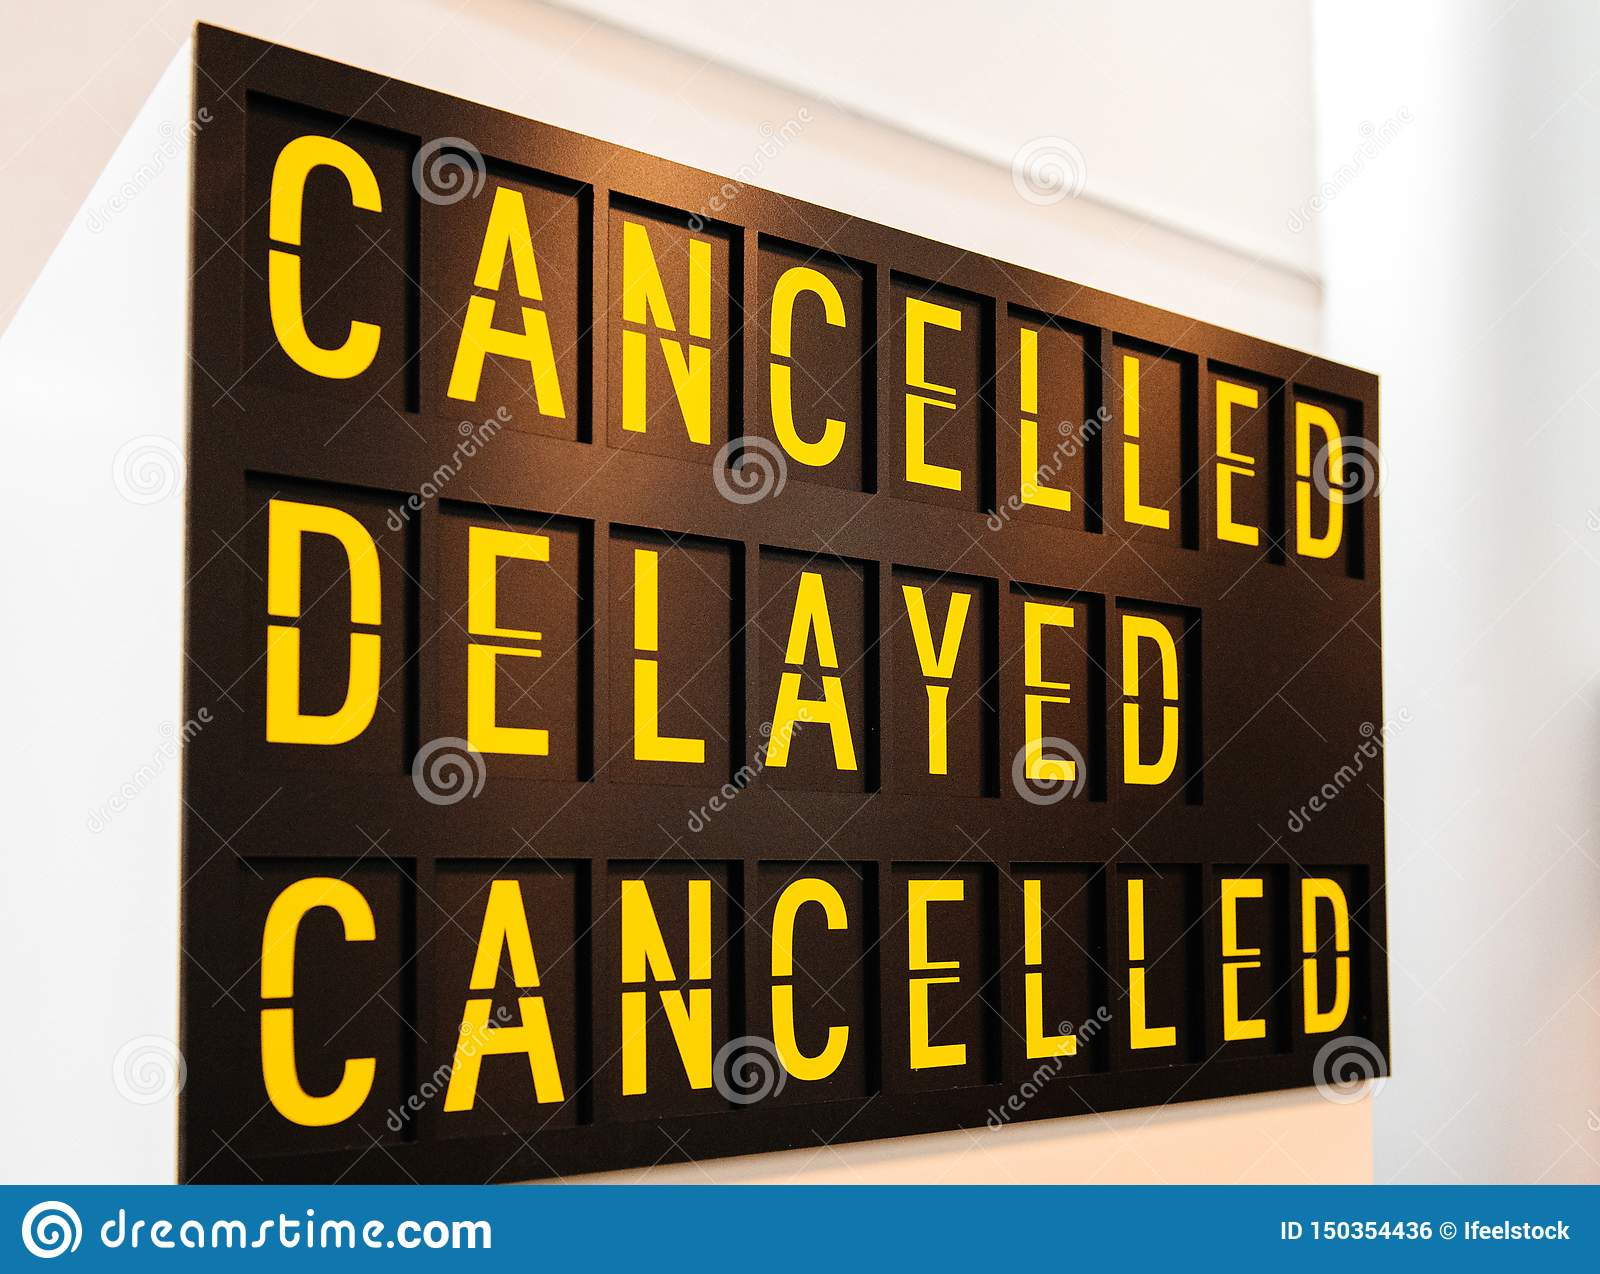 Canceled, delayed, canceled sign text letters words timetable